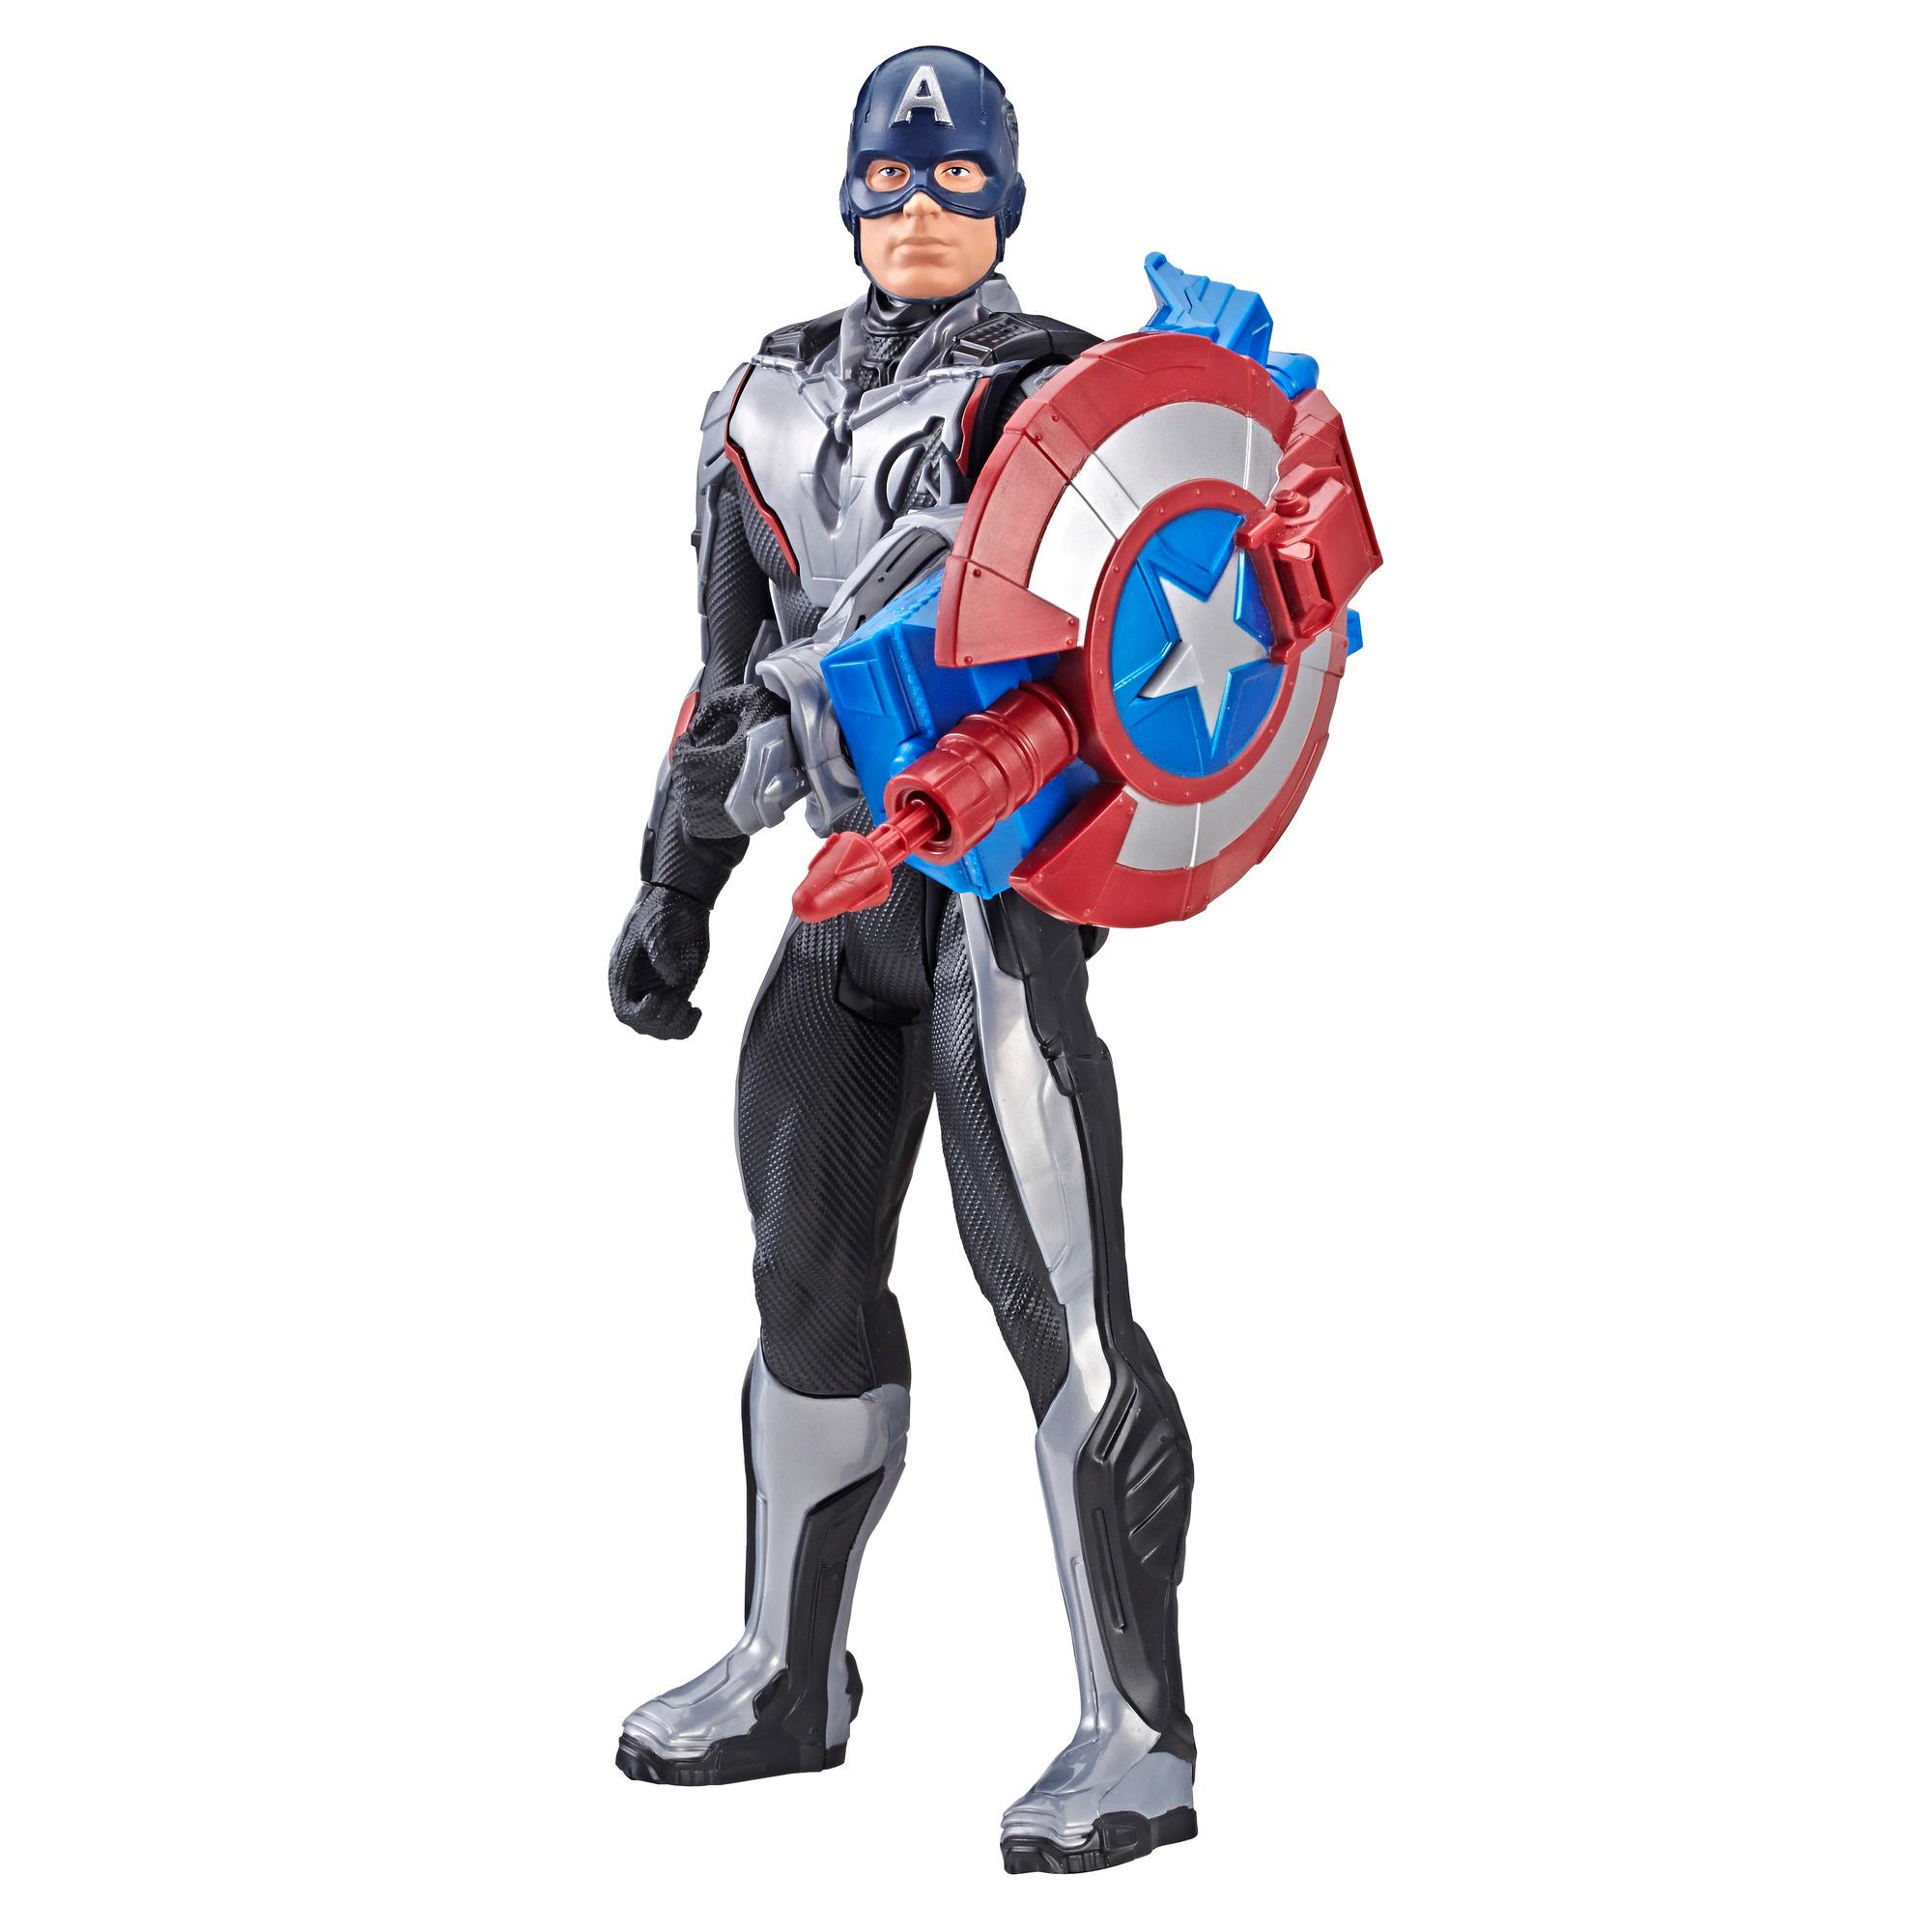 Marvel Avengers: Endgame - Titan Hero Power FX Captain America